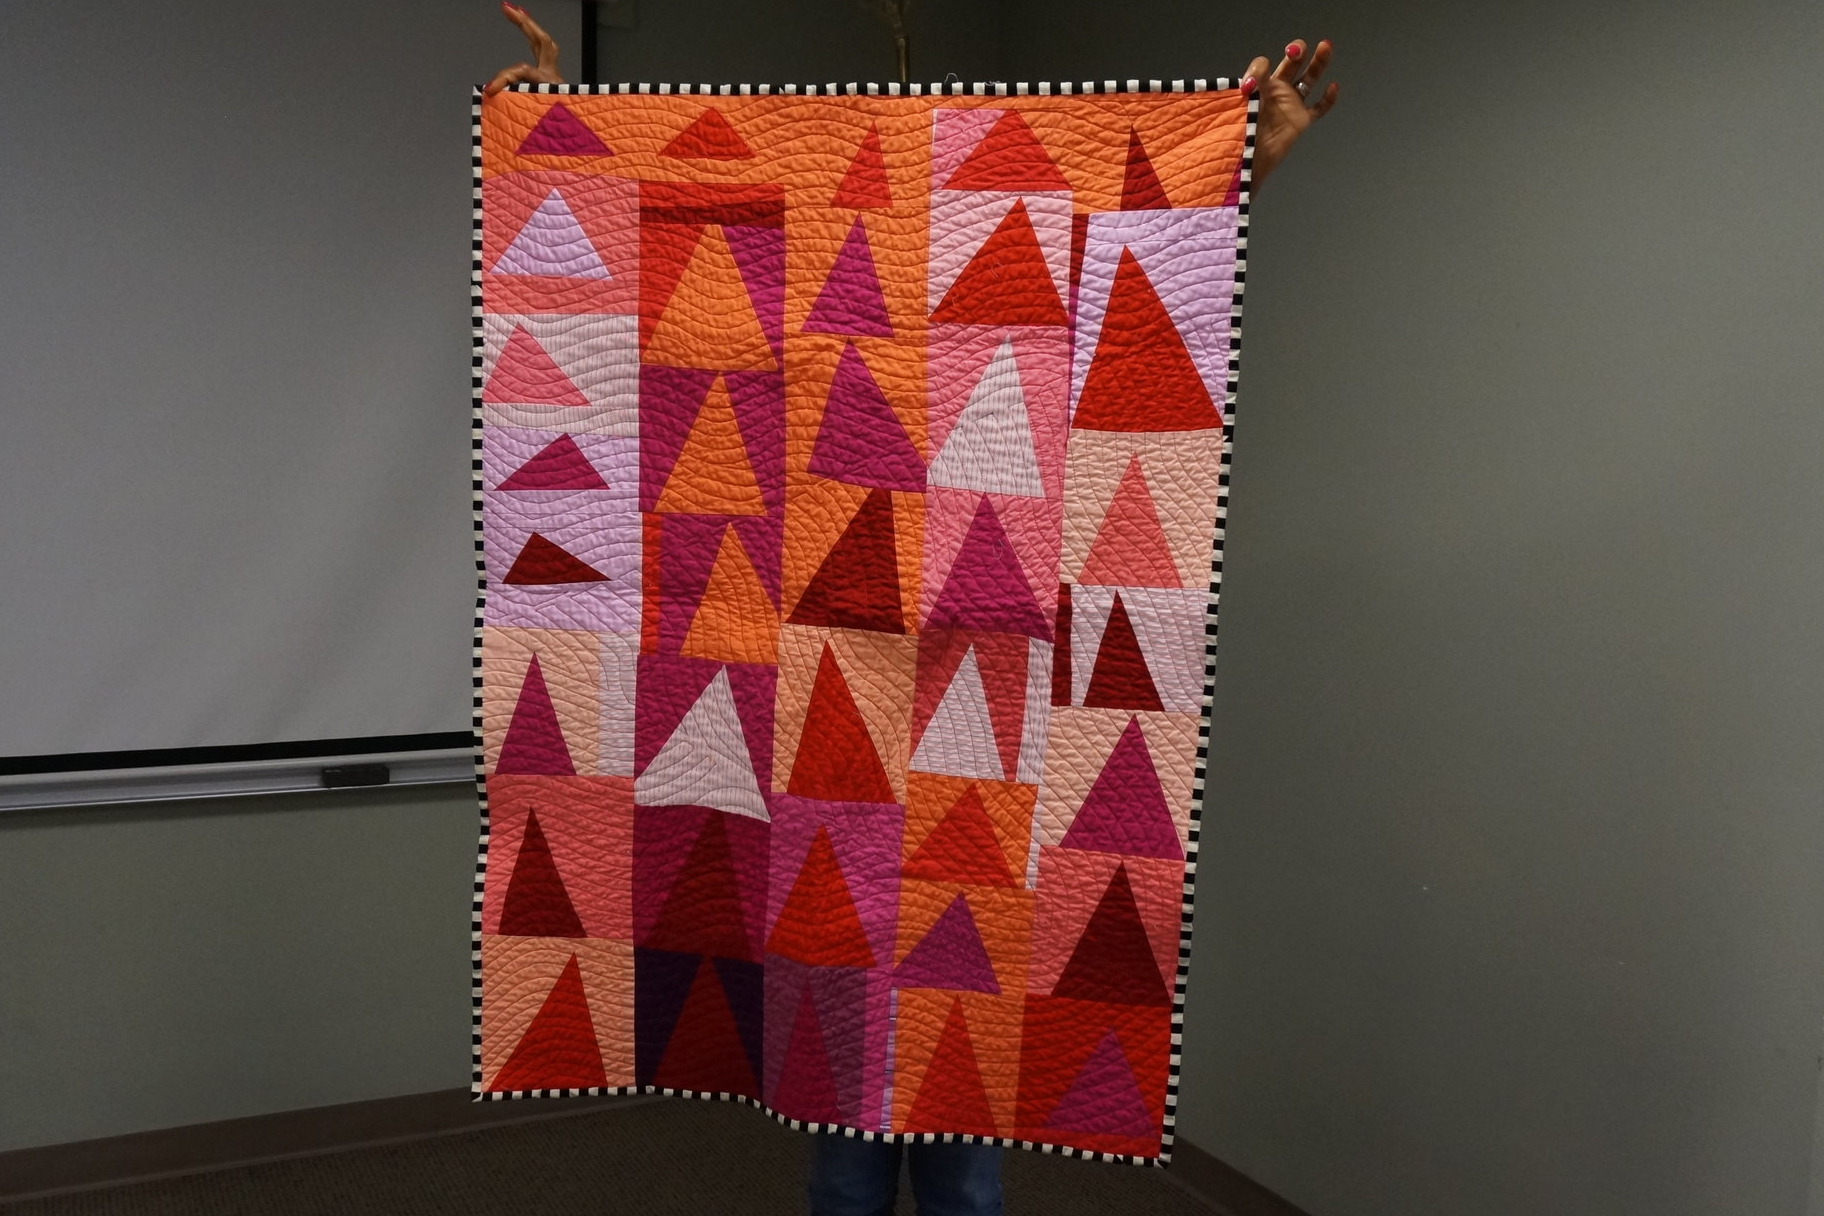 - Beverly's recent quilt was also made in a class—a workshop with Denyse Schmidt.